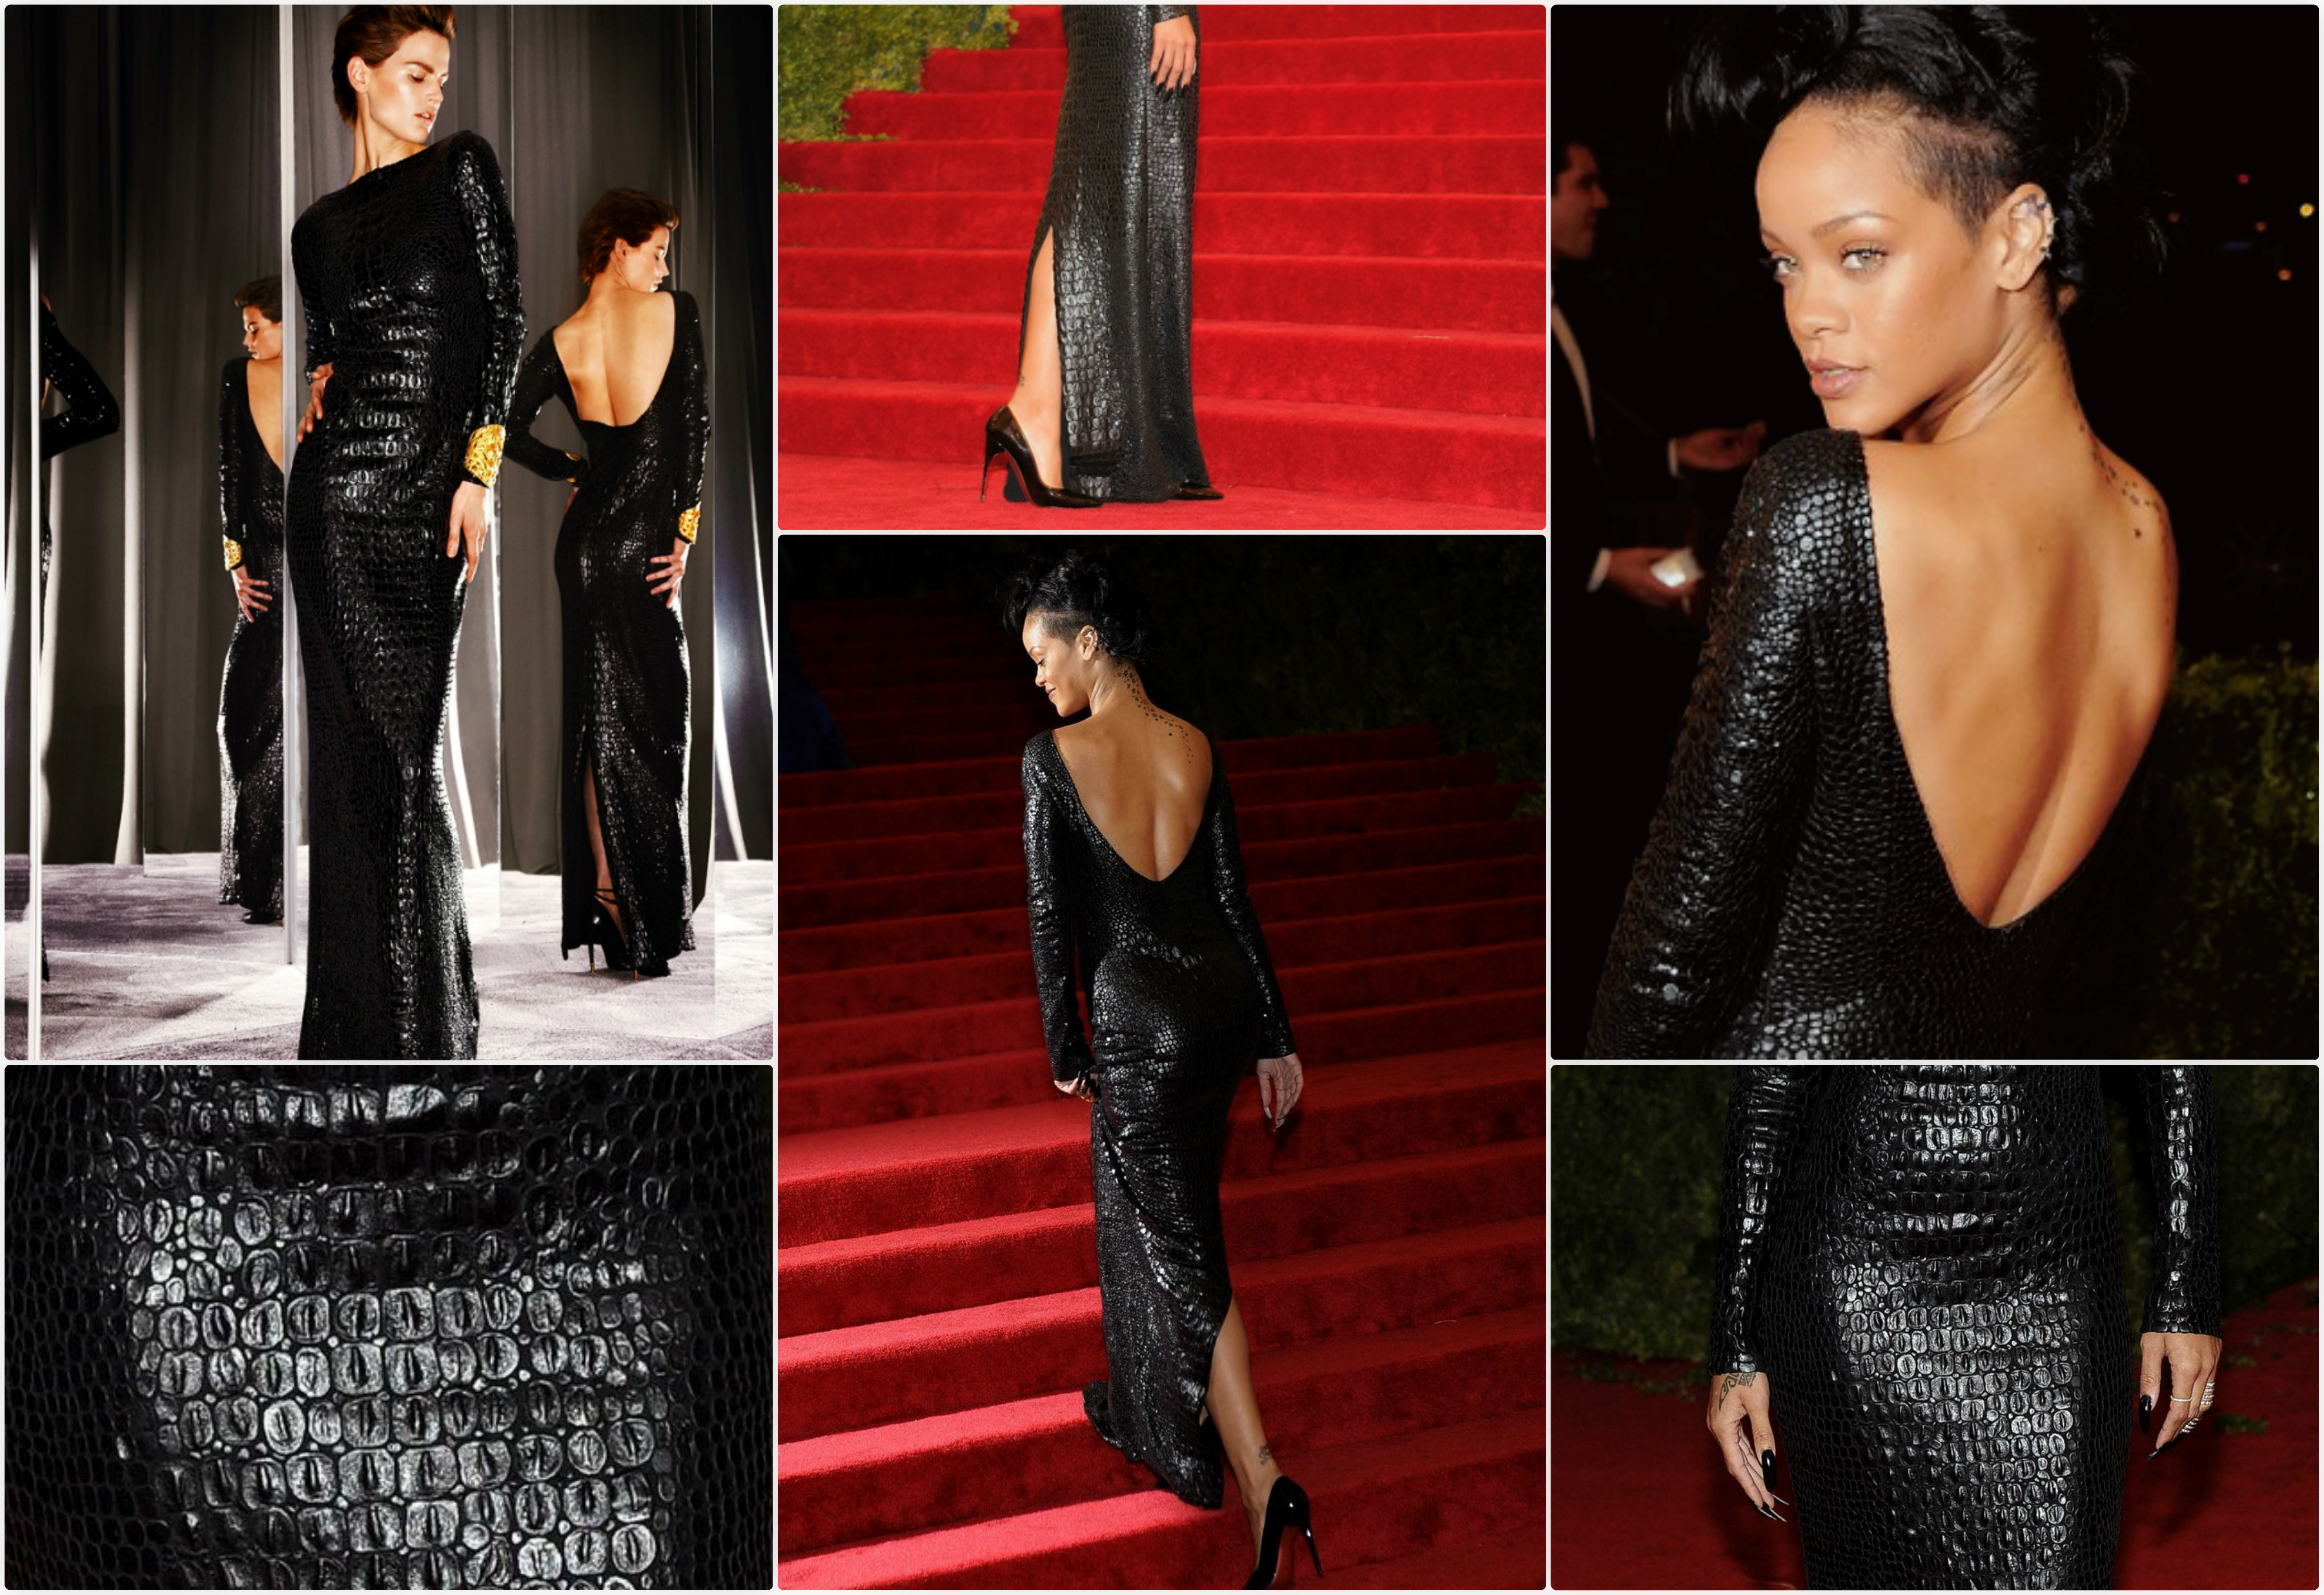 Rihanna Wears TOM FORD Autumn/Winter 2012 to Met Costume Institute Gala rihanna metgala tomford